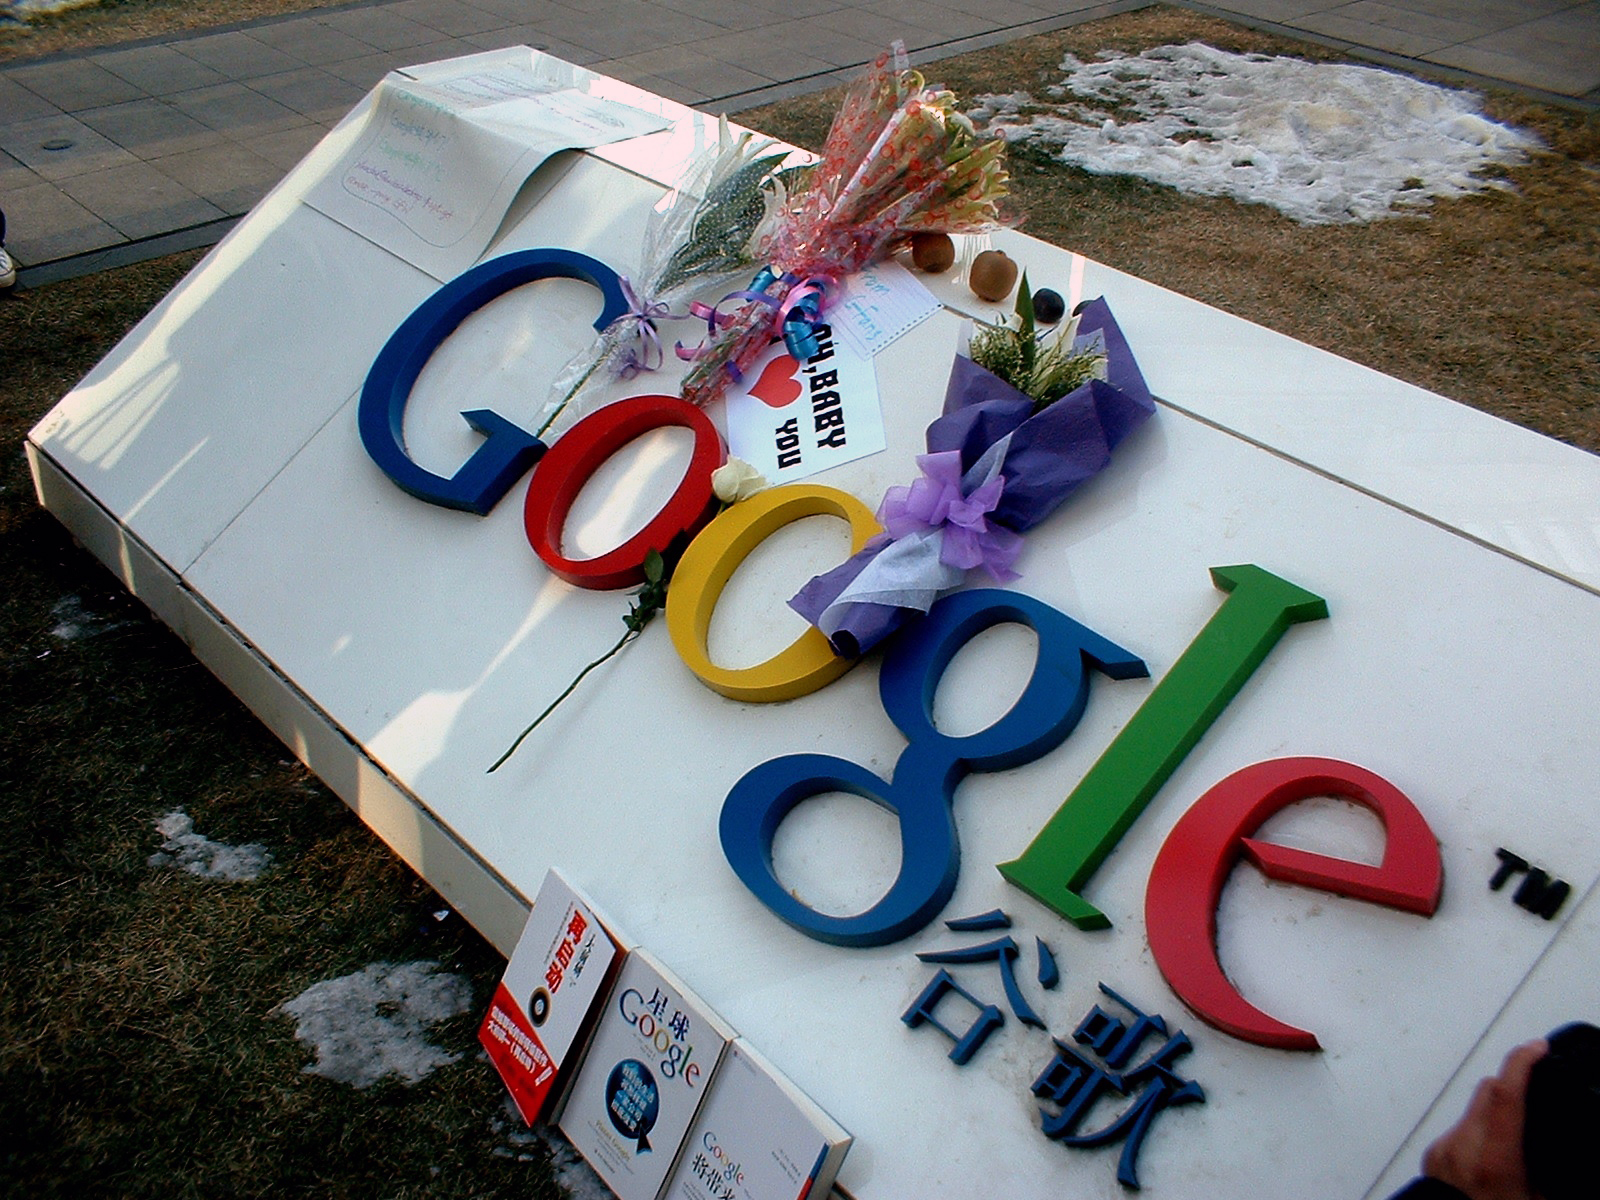 Tribute to Google China